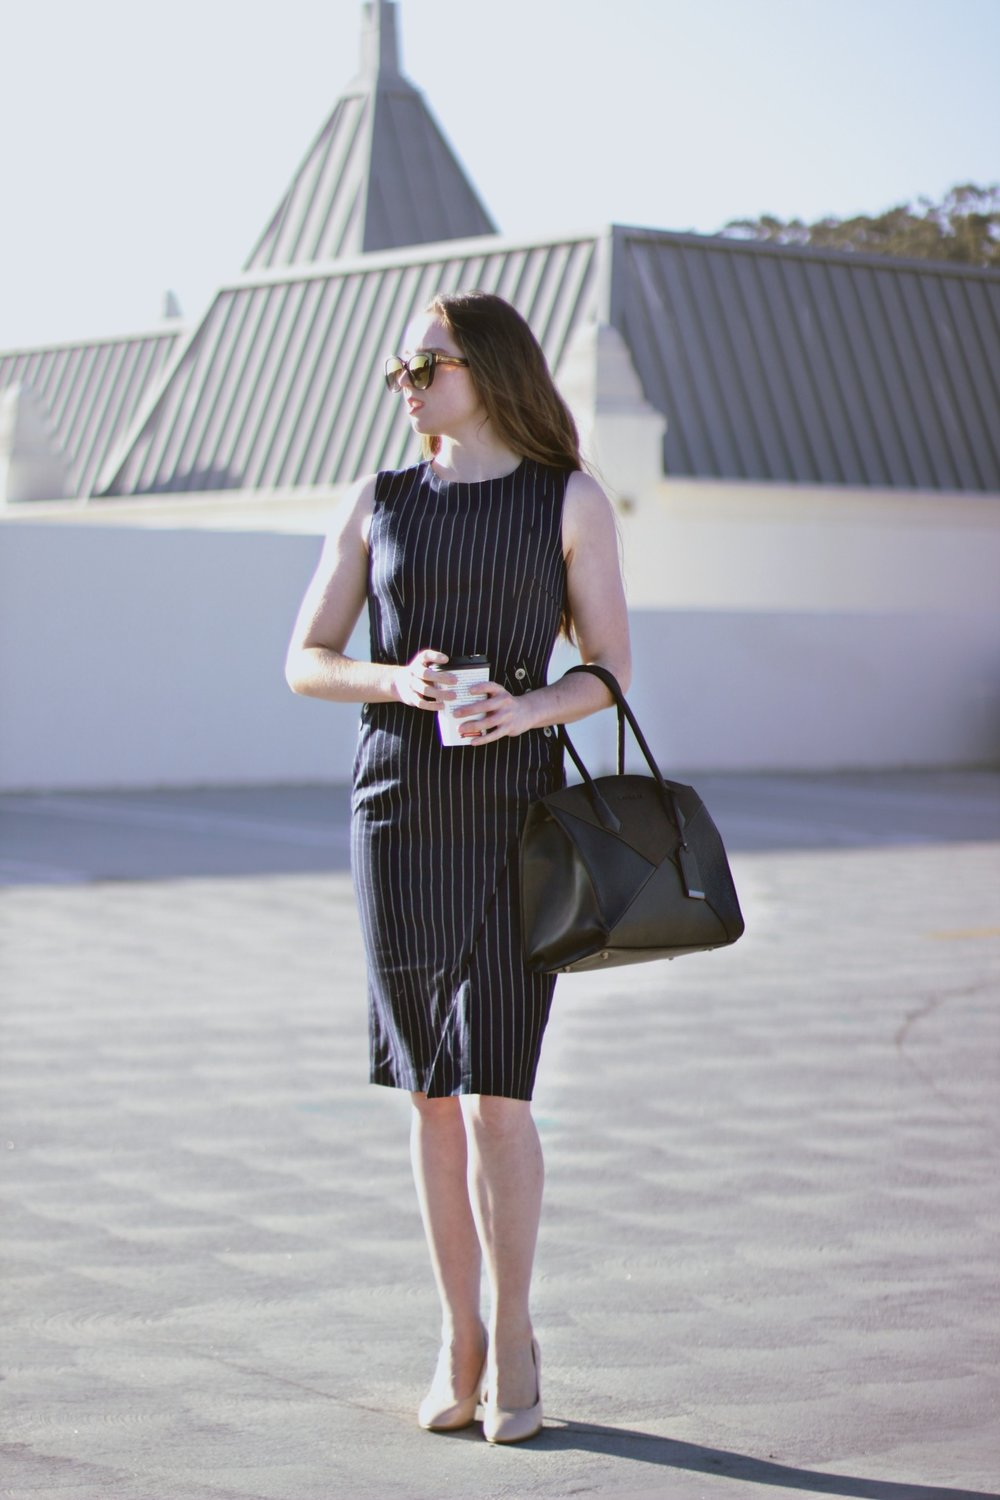 SLAY THE MONDAY - IN A SLIM FITTING SUIT DRESS